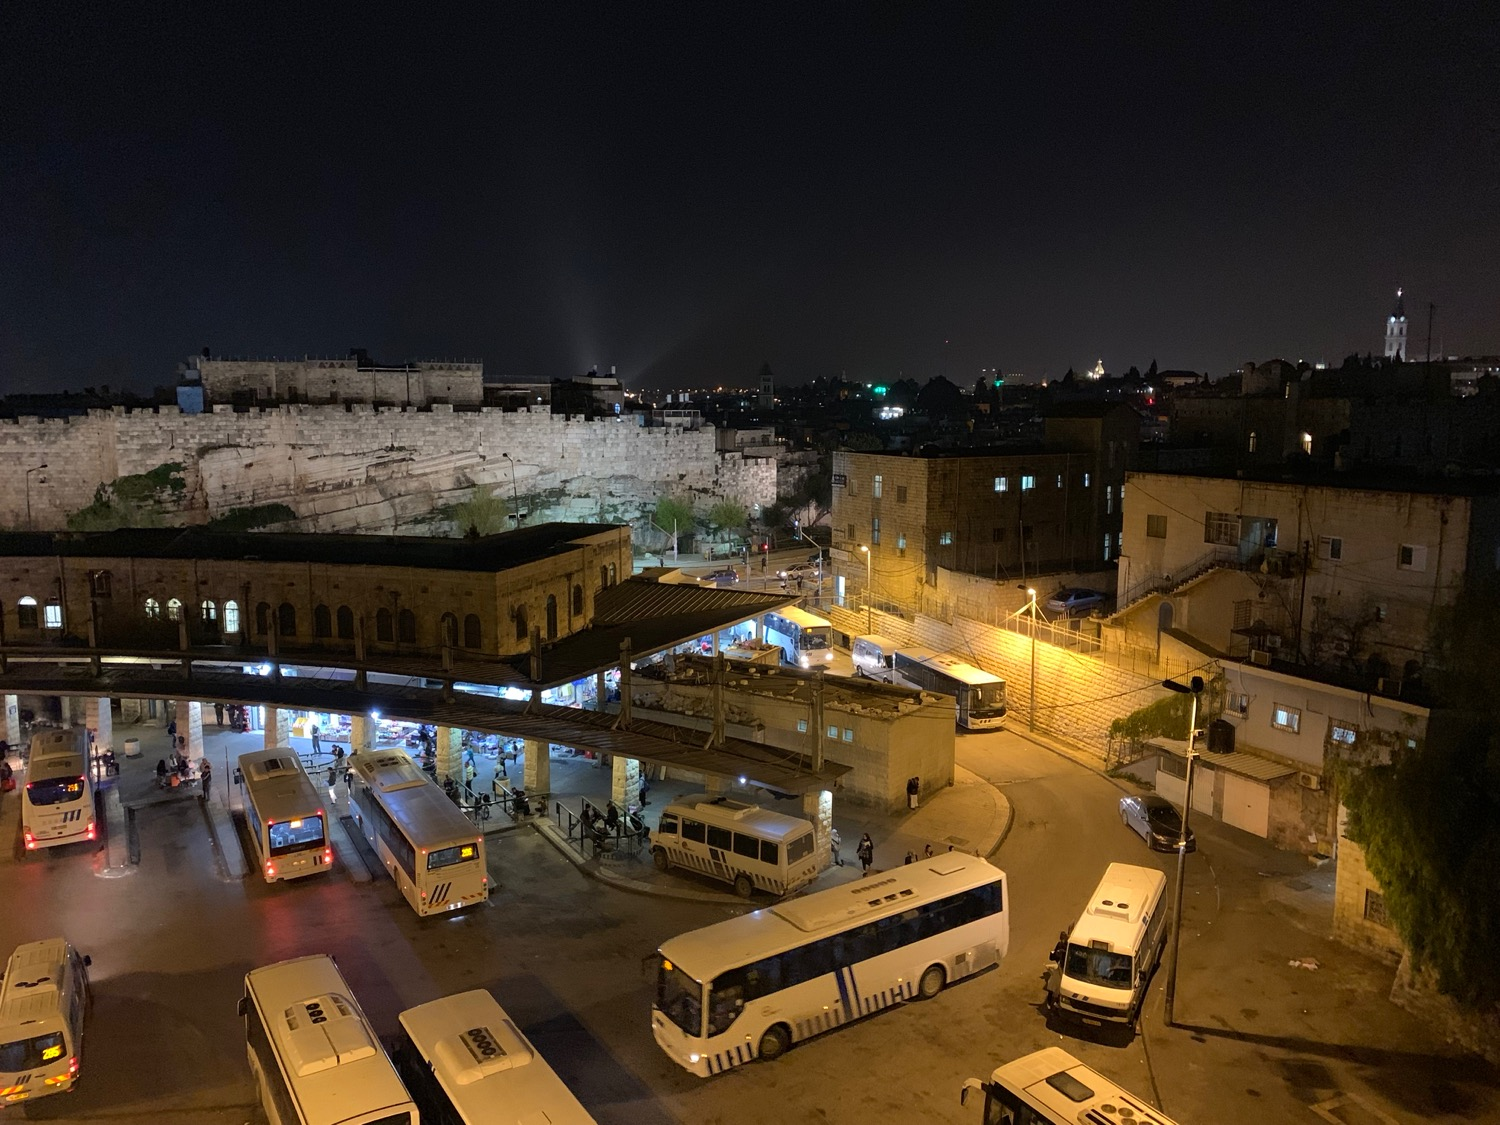 At the site of this modern-day Arab bus station way back in AD 30, the sky went dark and a feast was turned into mourning, just like the Prophet said more than 700 years before Christ was born.